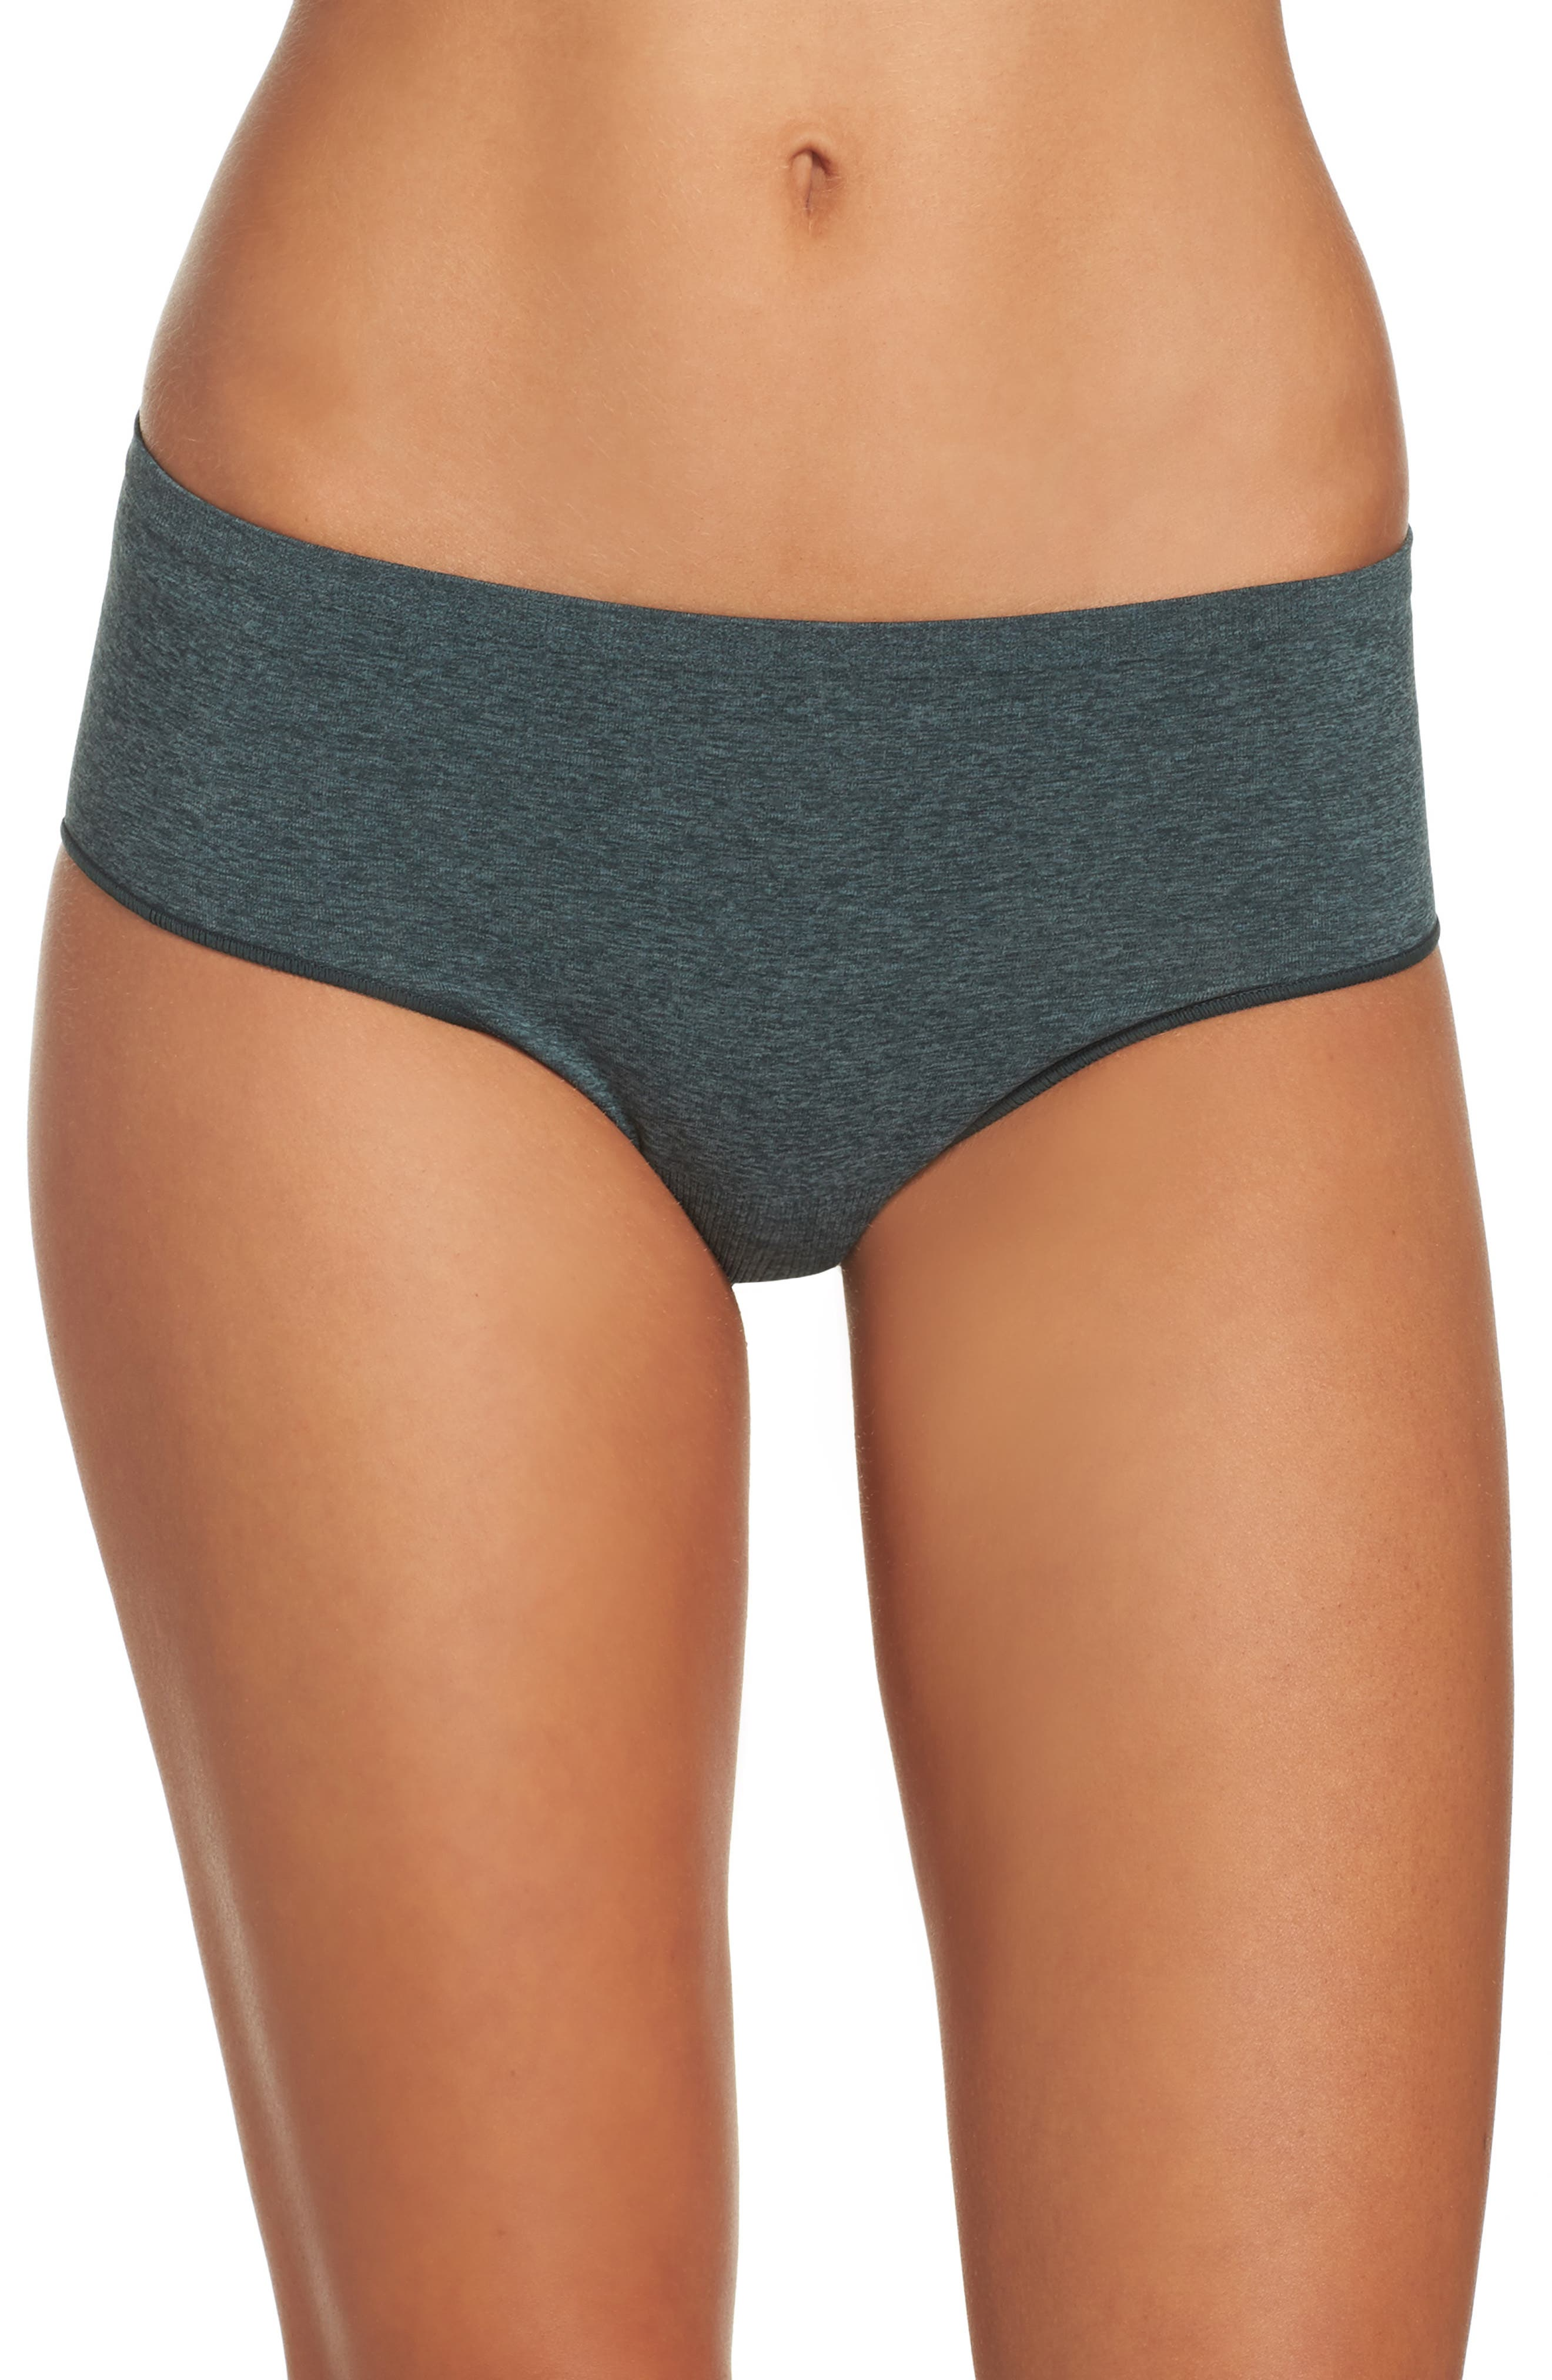 Nordstrom Lingerie Seamless Hipster Panties (3 for $33)